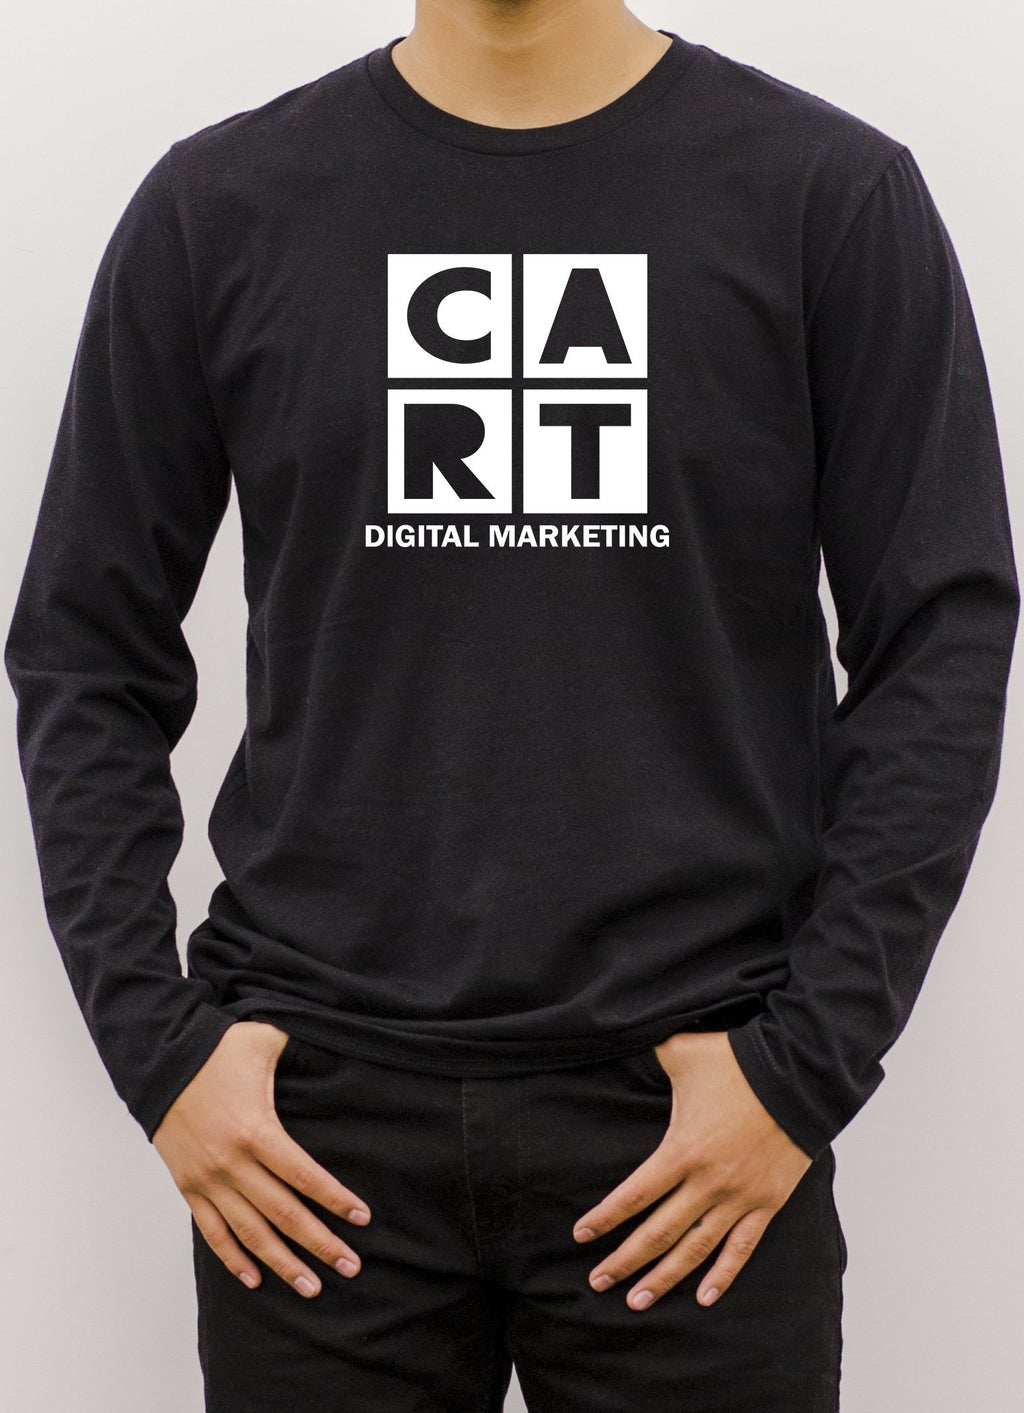 Marketing Long Sleeve T-Shirt - All White